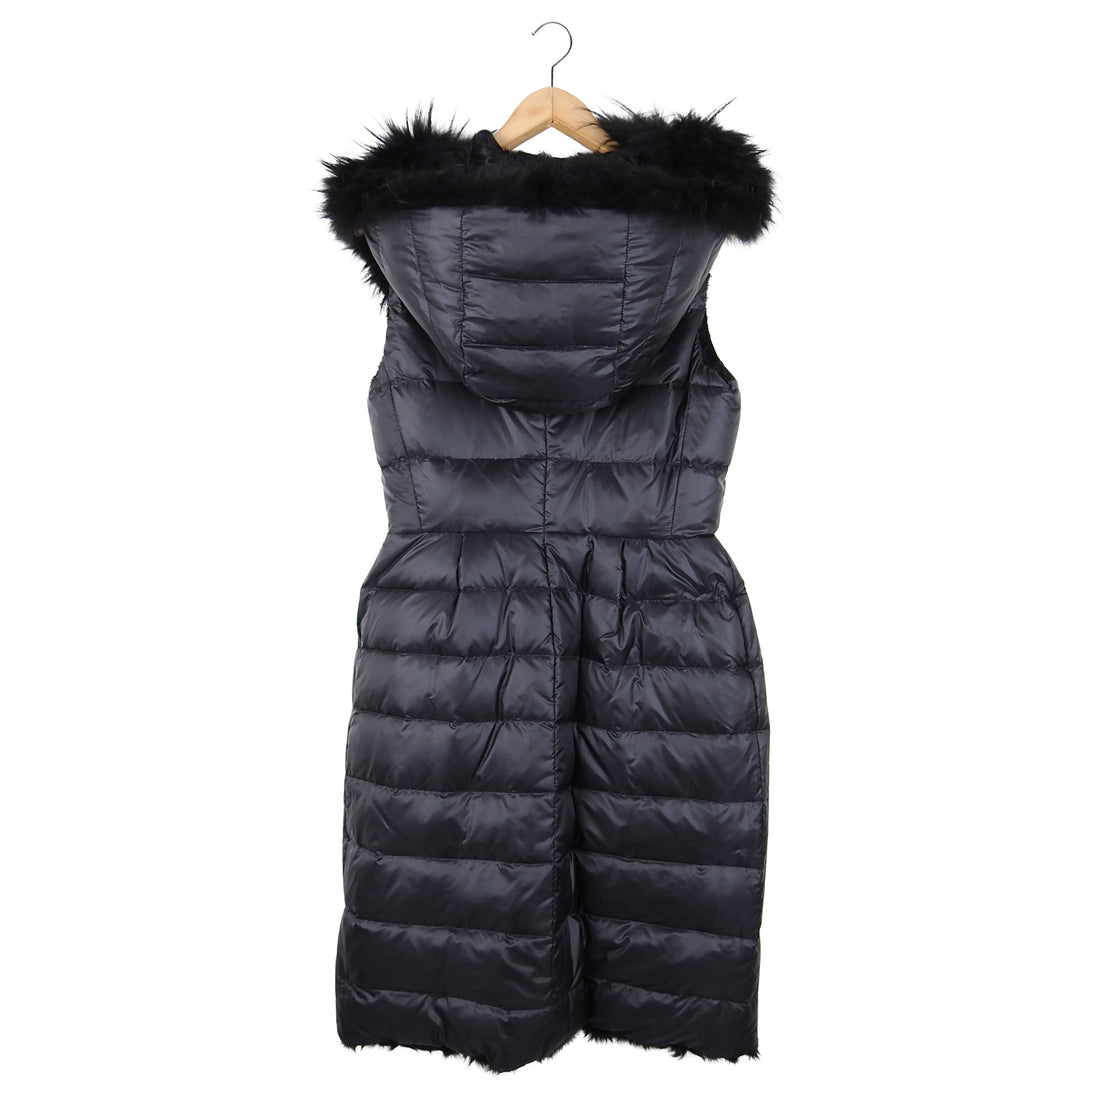 Moncler Gamme Rouge Lamb Fur and Nylon Reversible Sleeveless Coat - S